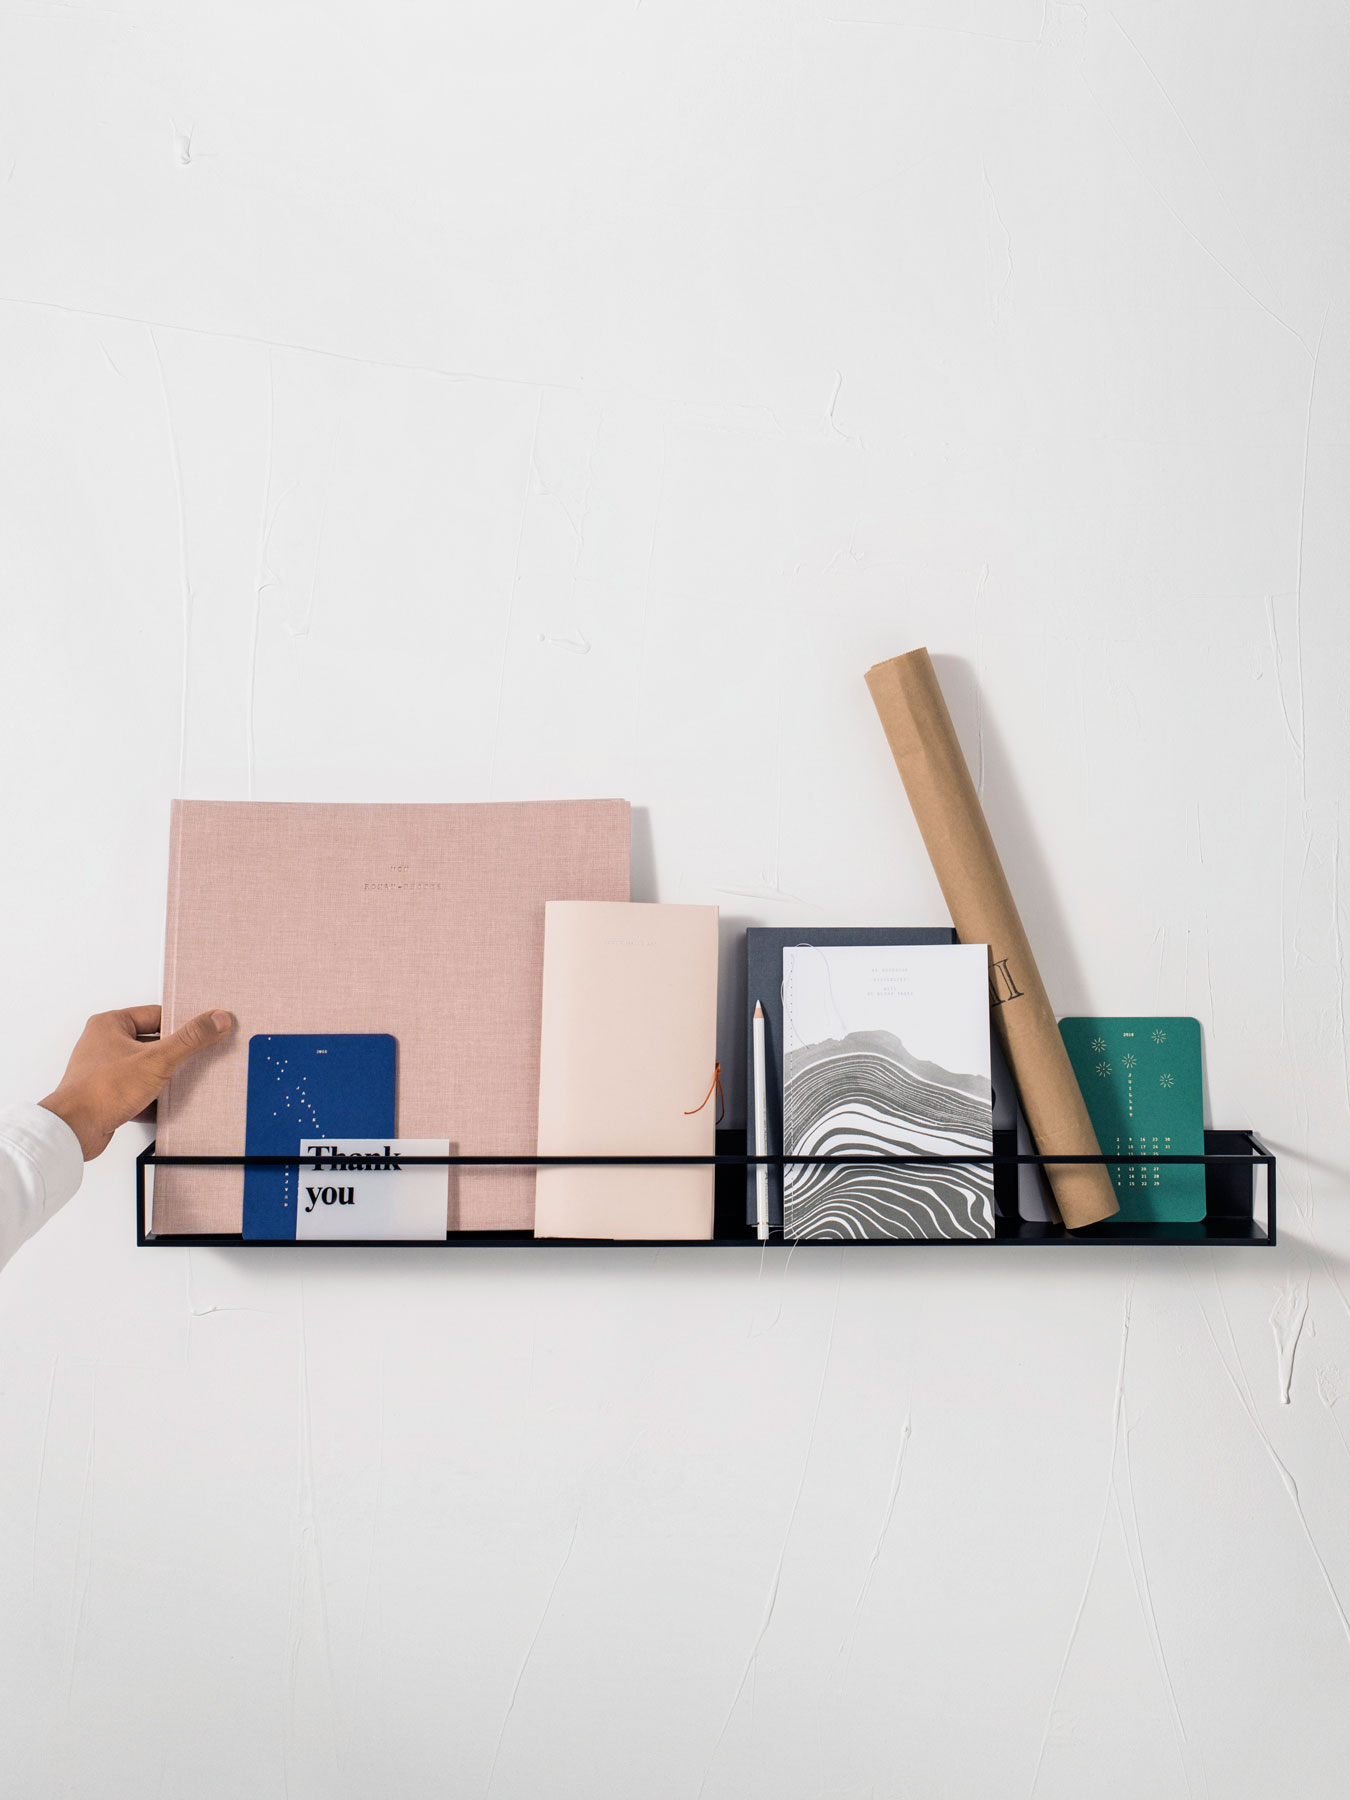 Our Favorite Organizers From the IKEA Catalog 31  Real Simple